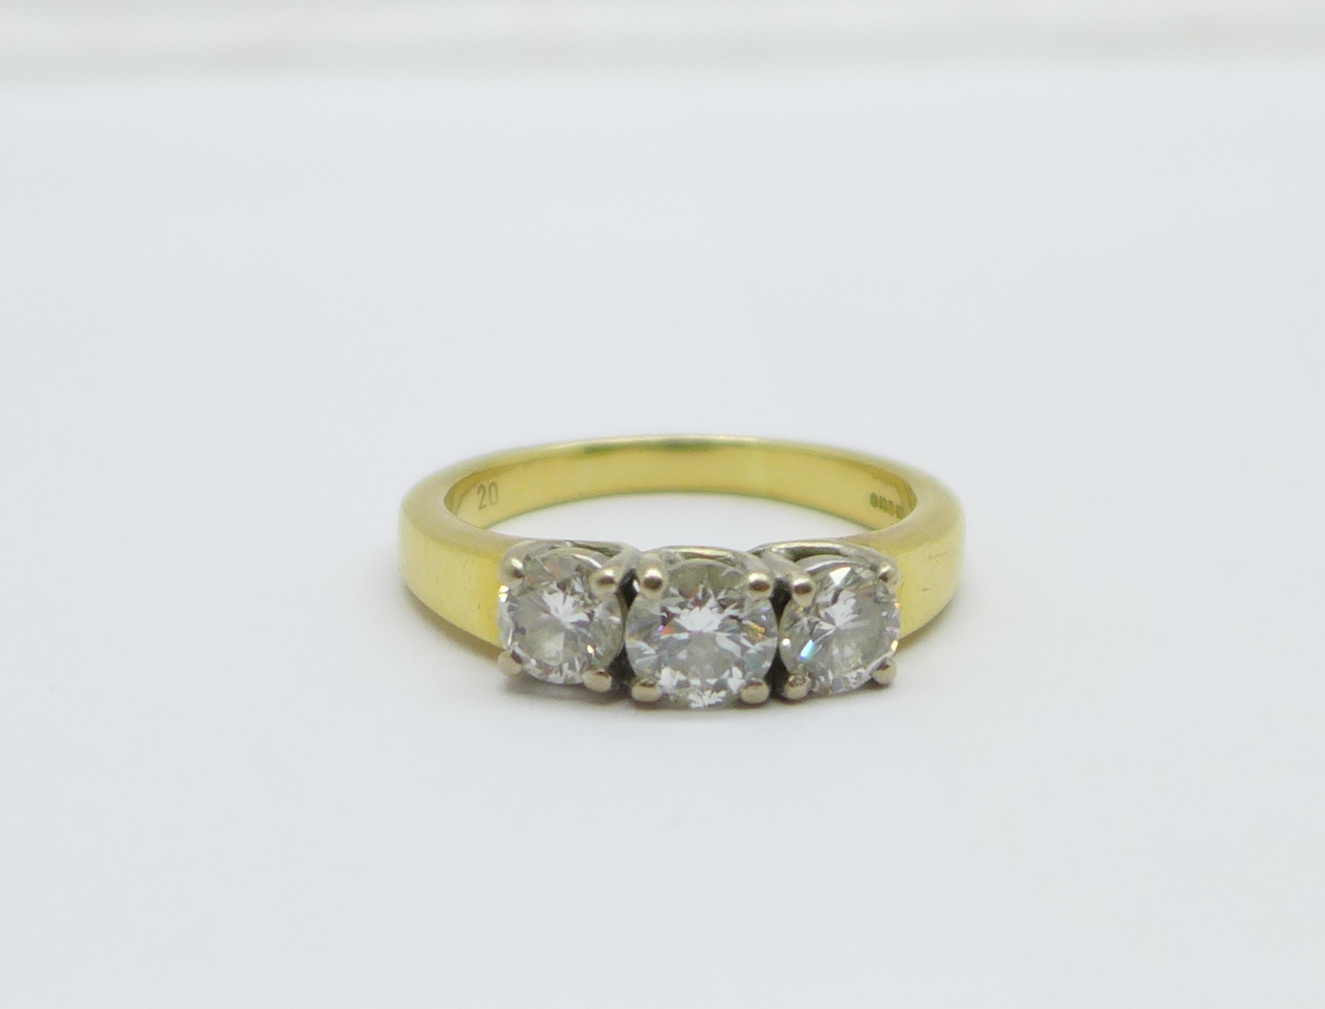 An 18ct yellow gold three stone diamond ring, approximately 1.25 carat total diamond weight, 8.6g, V